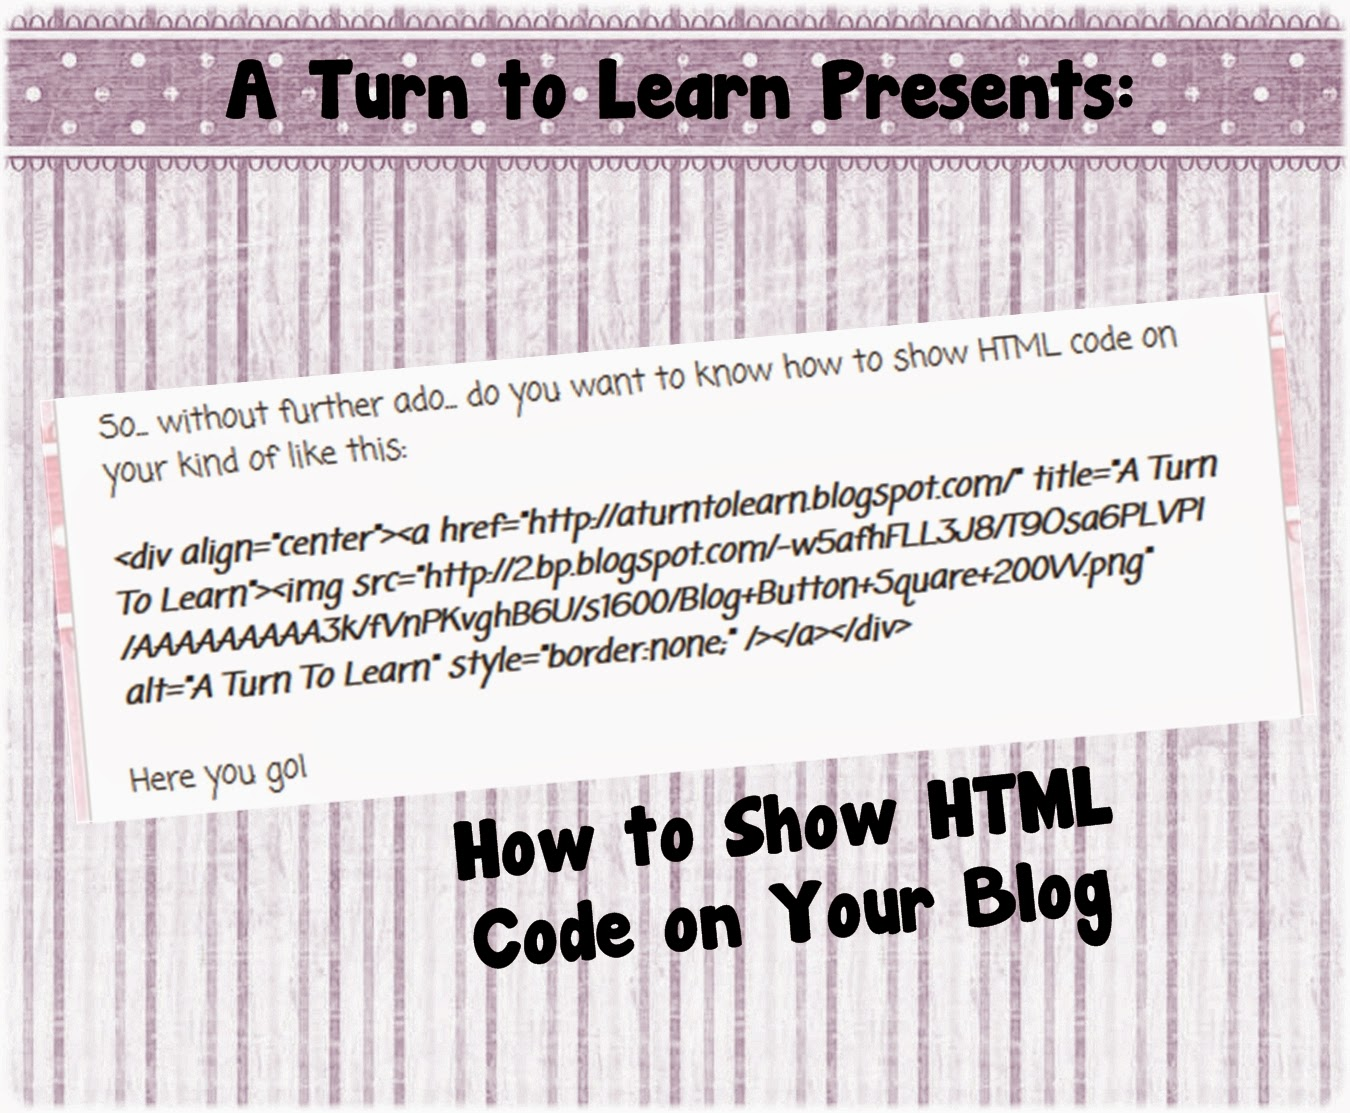 http://aturntolearn.blogspot.com/2015/03/how-to-show-html-code-on-your-blog.html